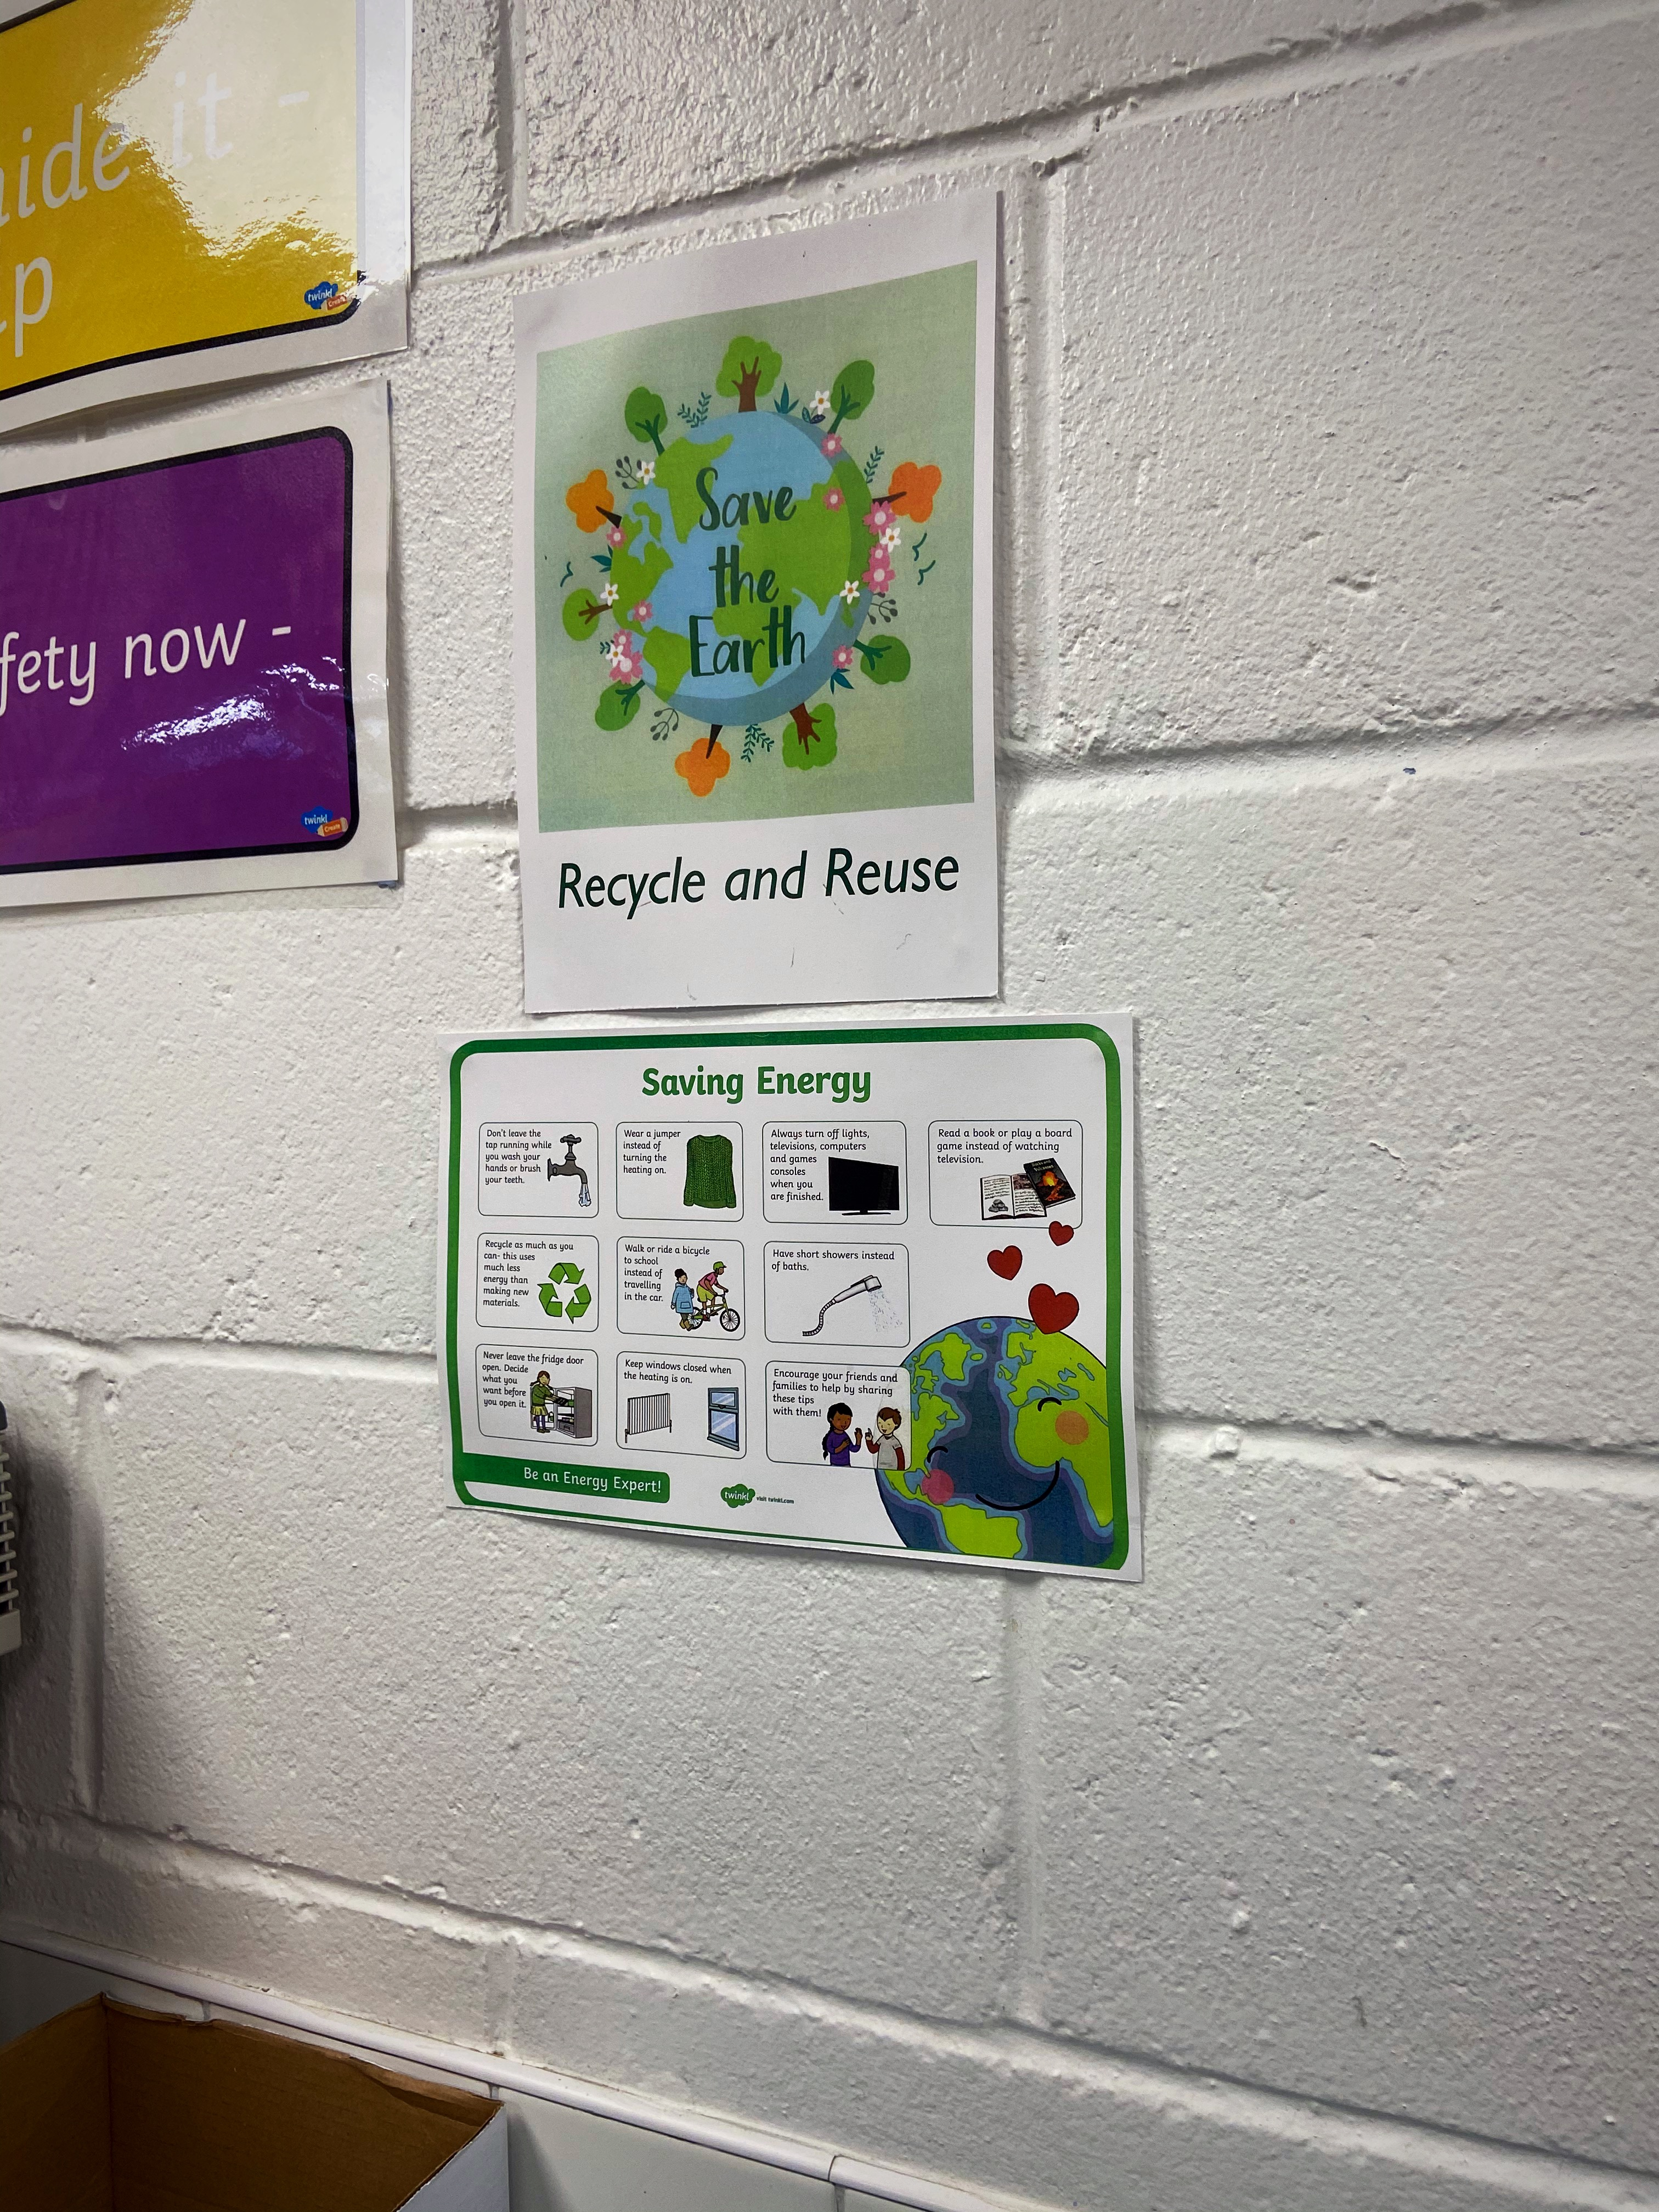 Recycling fact posters and strategies to save energy are displayed around the school